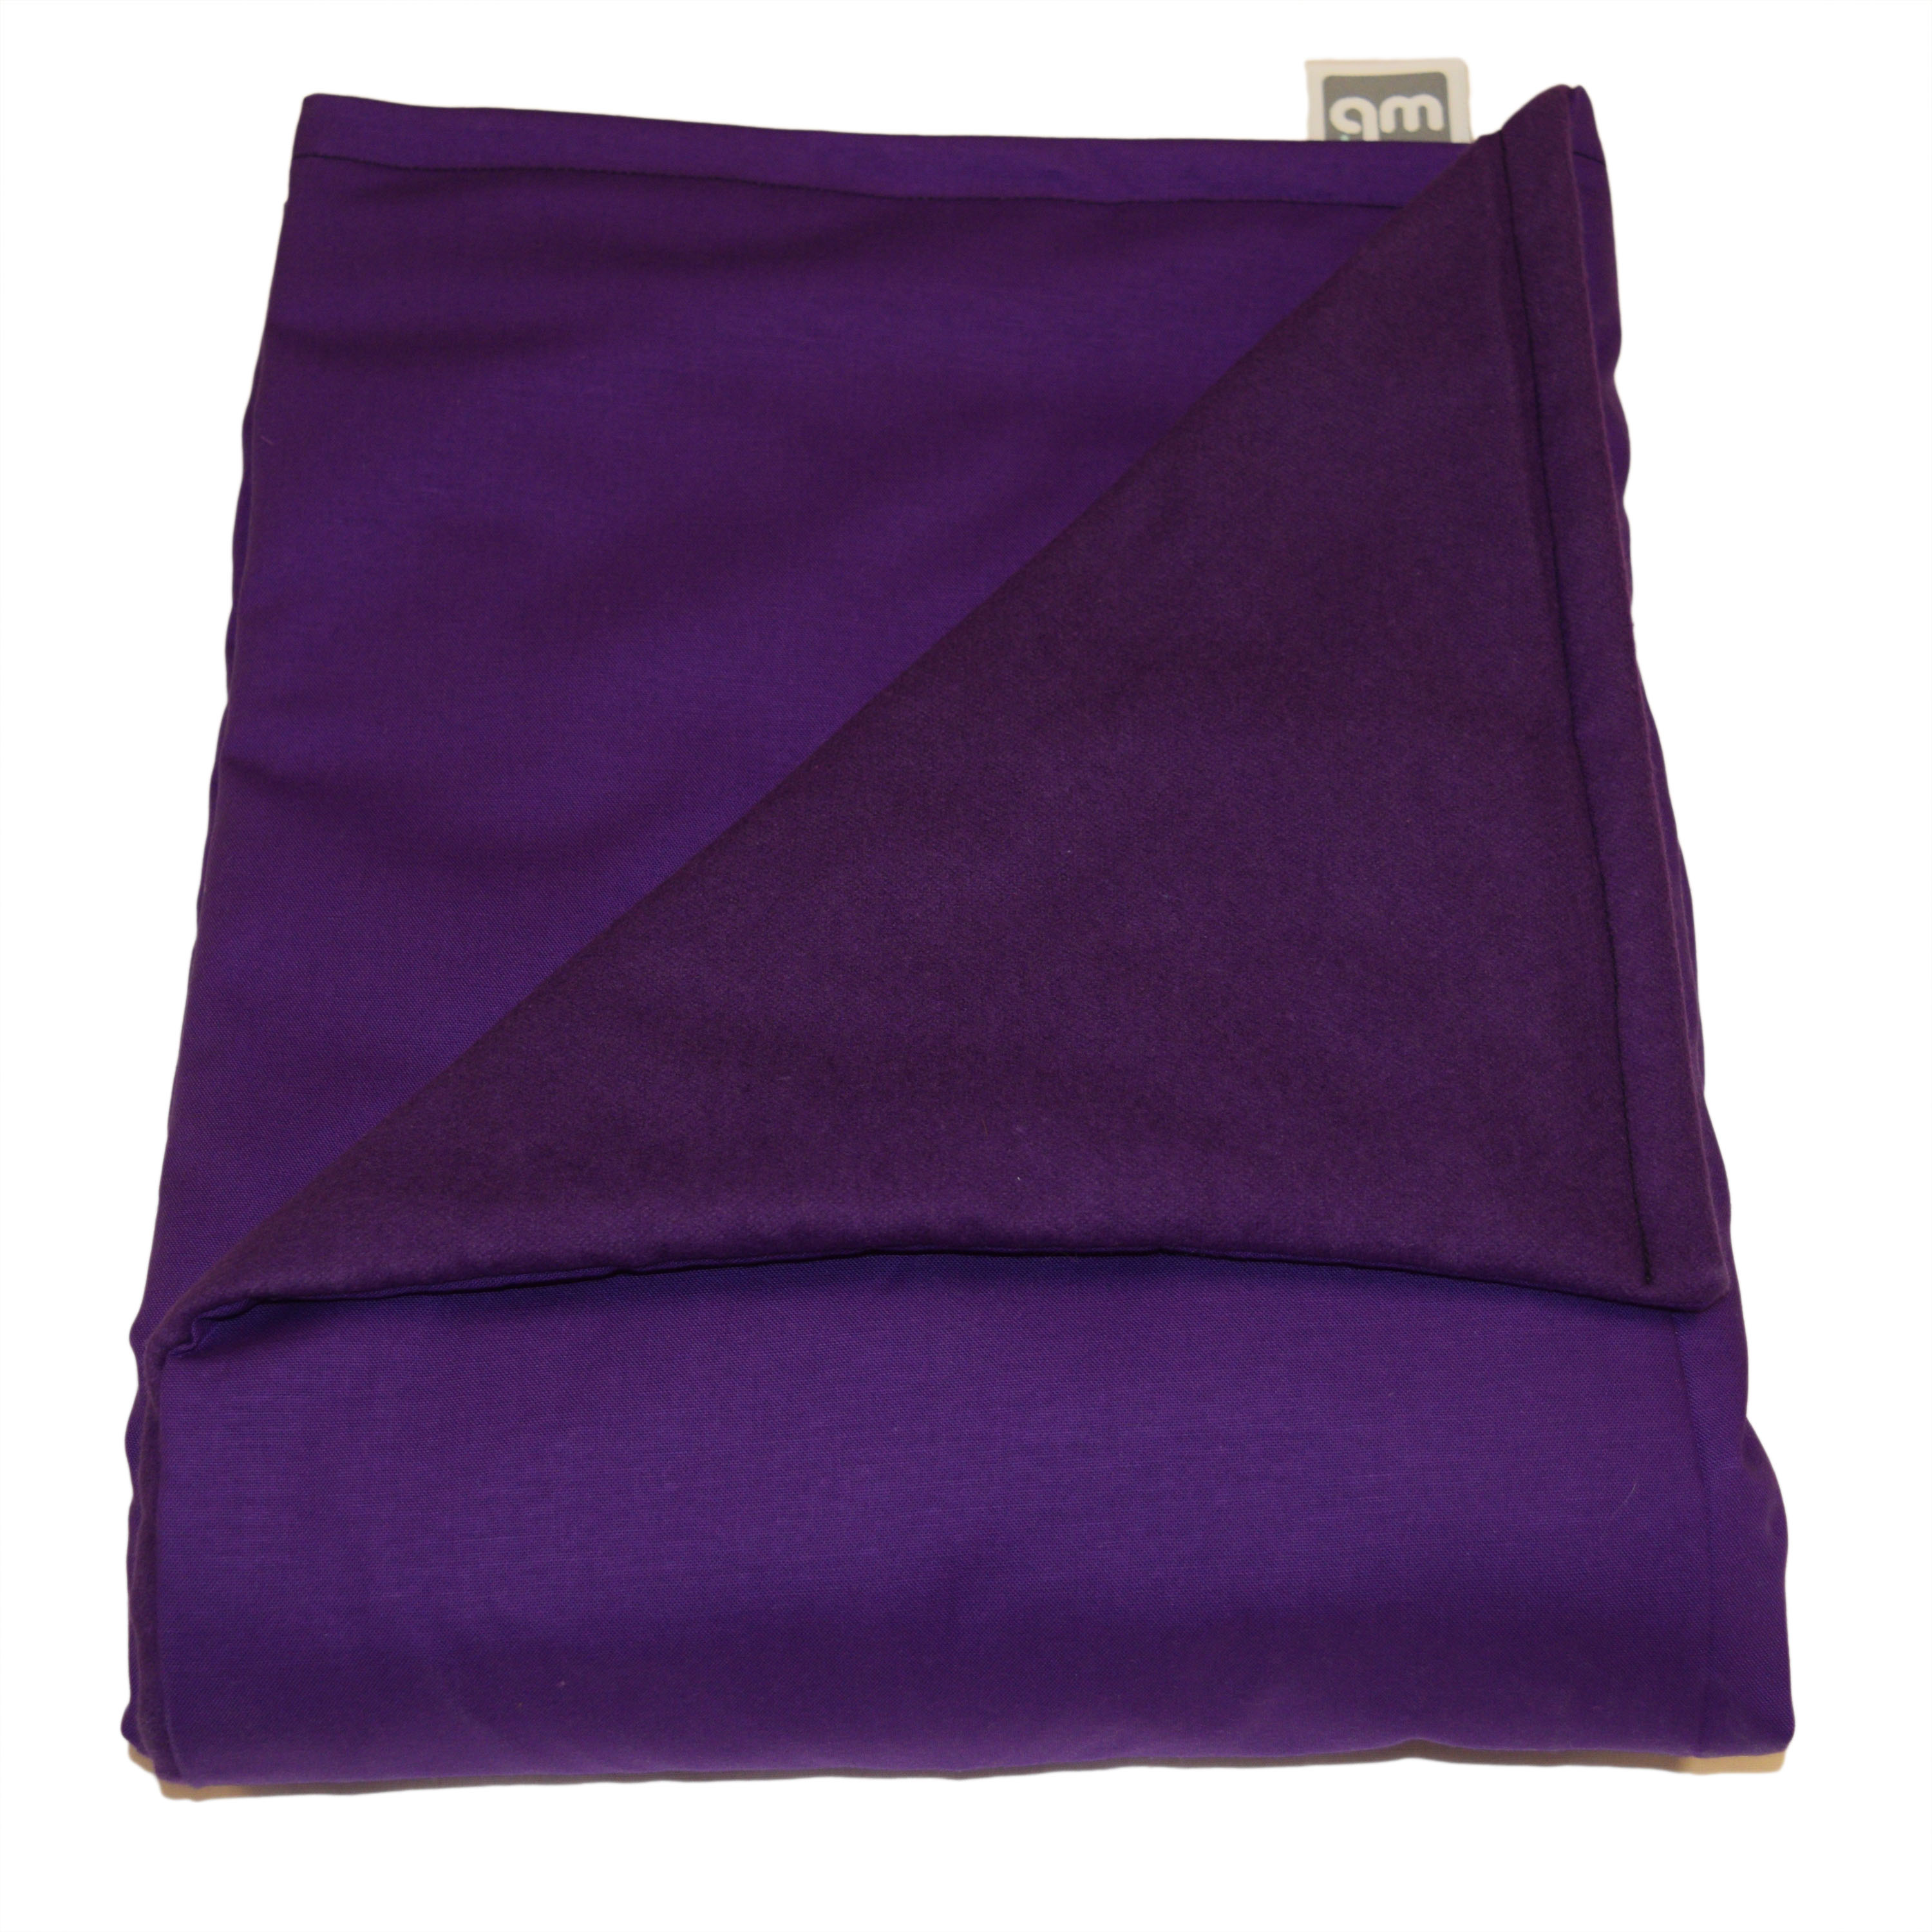 """WEIGHTED BLANKETS PLUS LLC - ADULT EXTRA LARGE WEIGHTED BLANKET - PURPLE - COTTON/FLANNEL (80""""L x 58""""W) 25lb HIGH PRESSURE."""